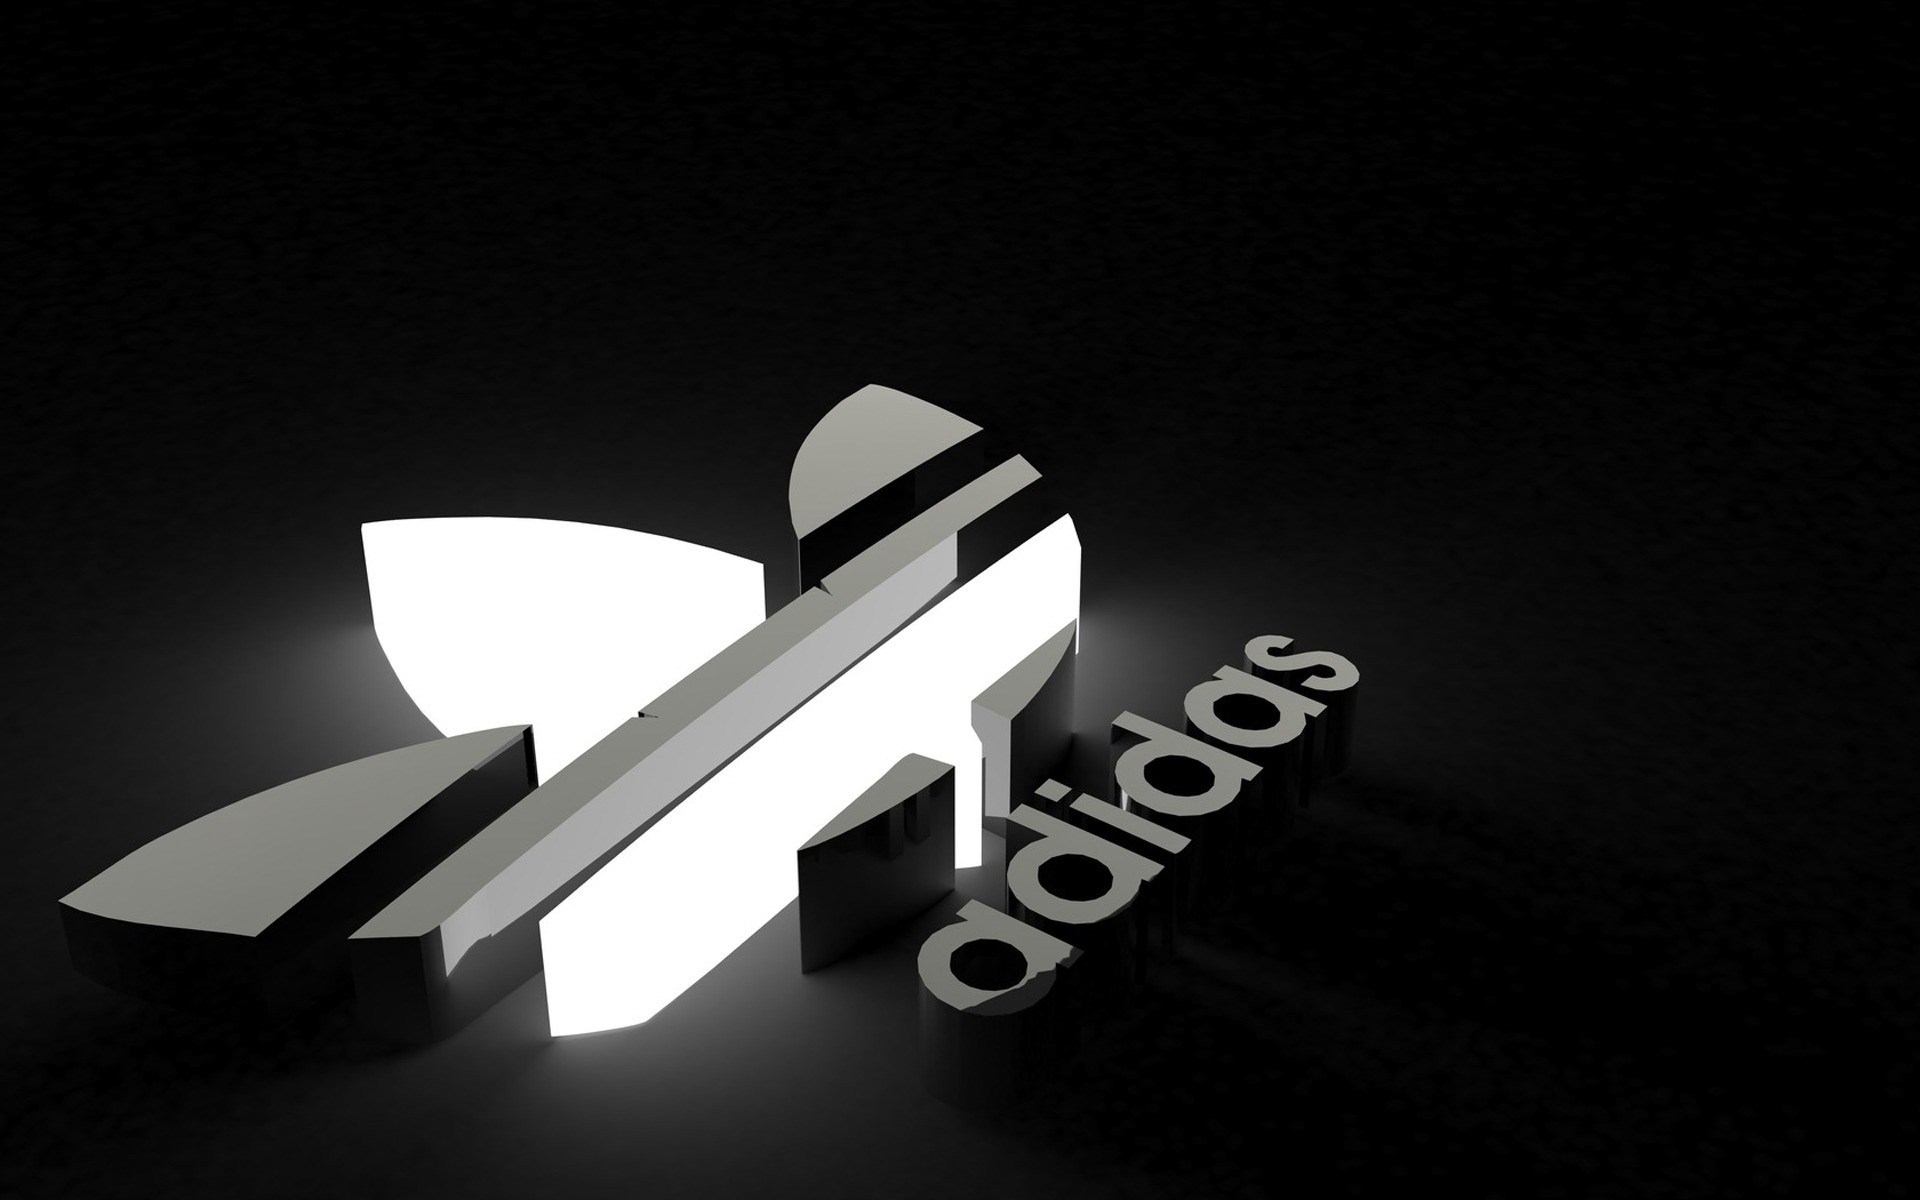 Anime Love Wallpaper Hd Adidas 3d Logo Hd 3d 4k Wallpapers Images Backgrounds